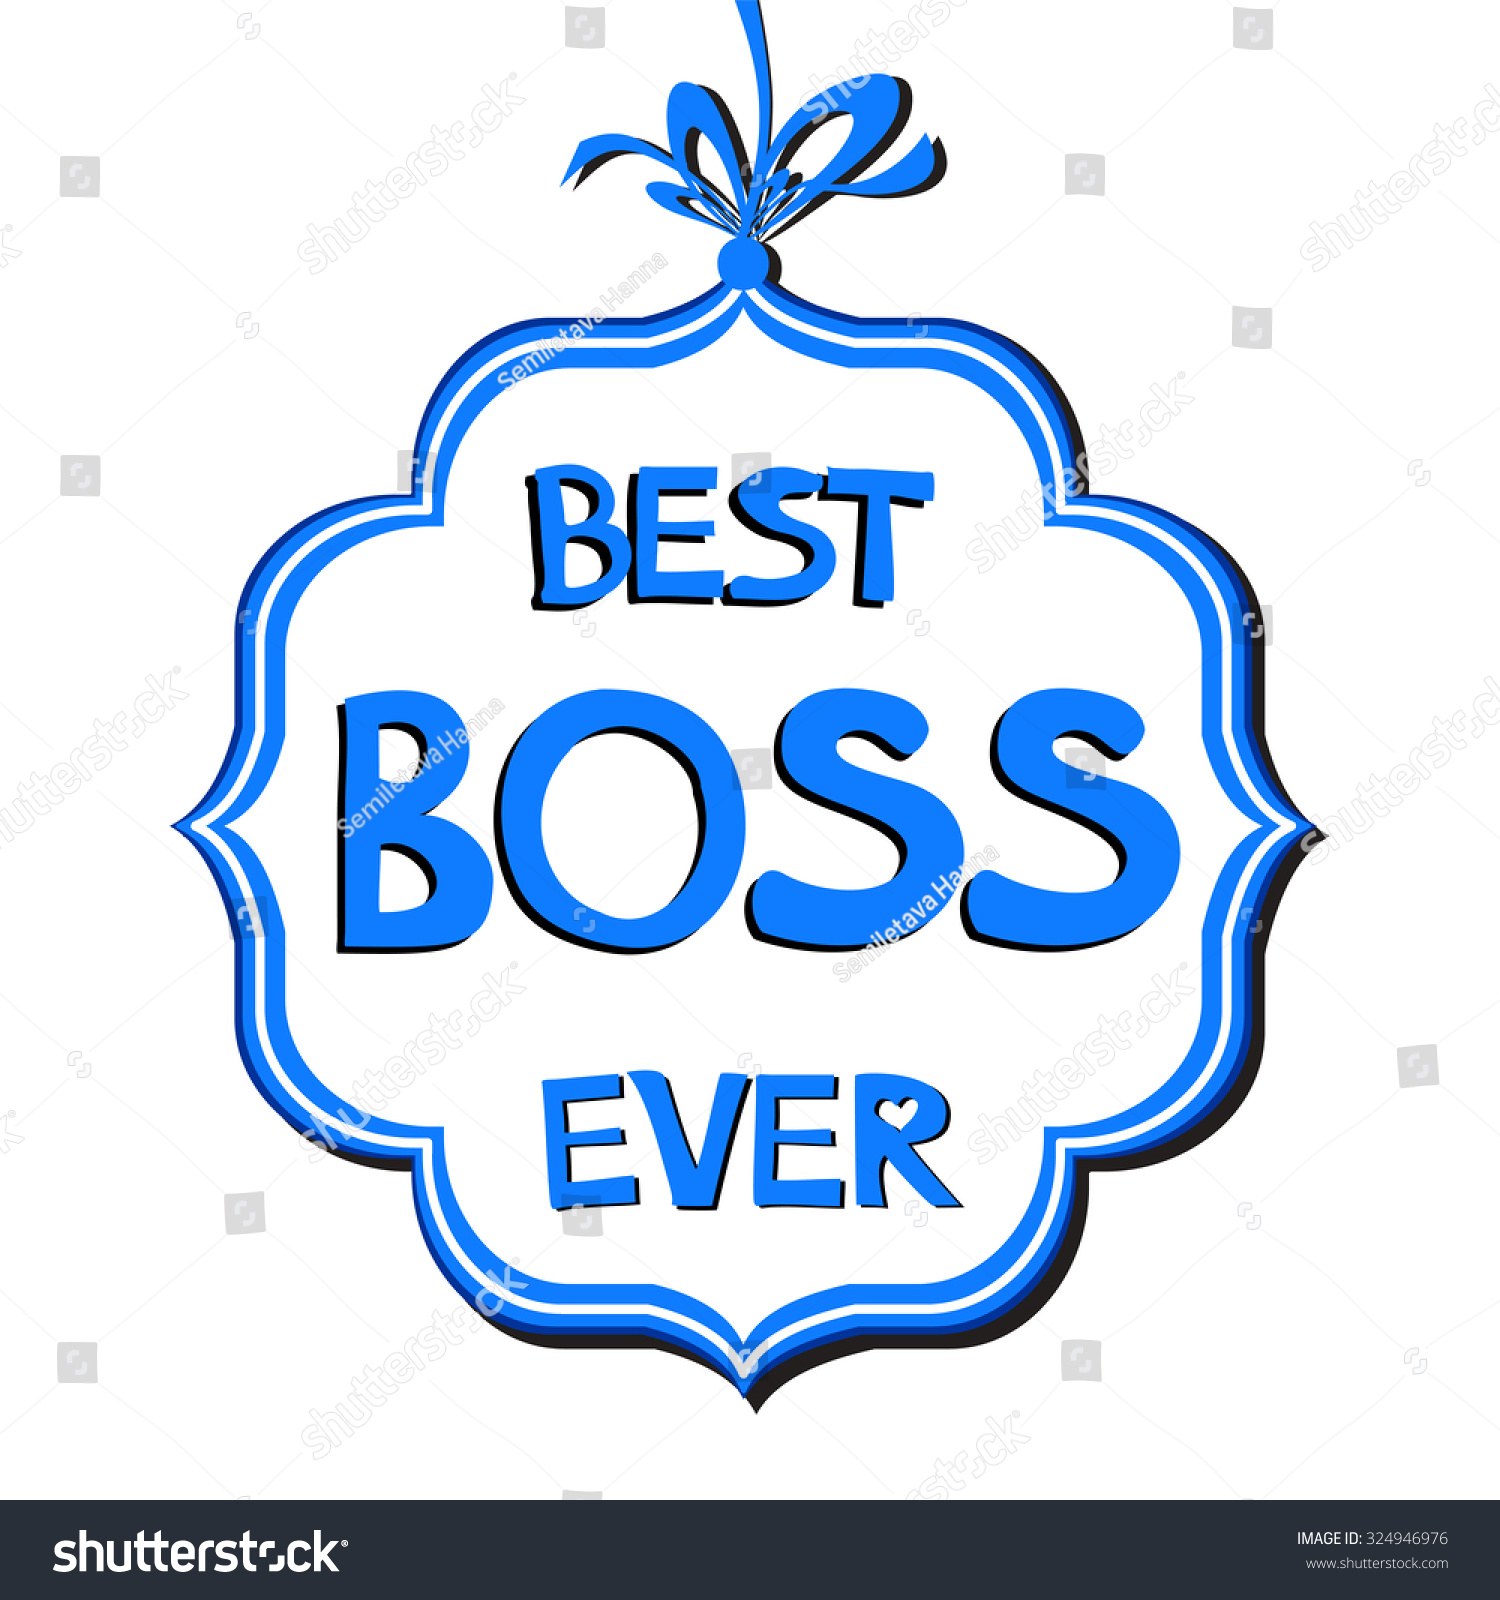 Happy boss-s day clipart jpg freeuse library Boss Day Clipart Animations - Free Clipart jpg freeuse library